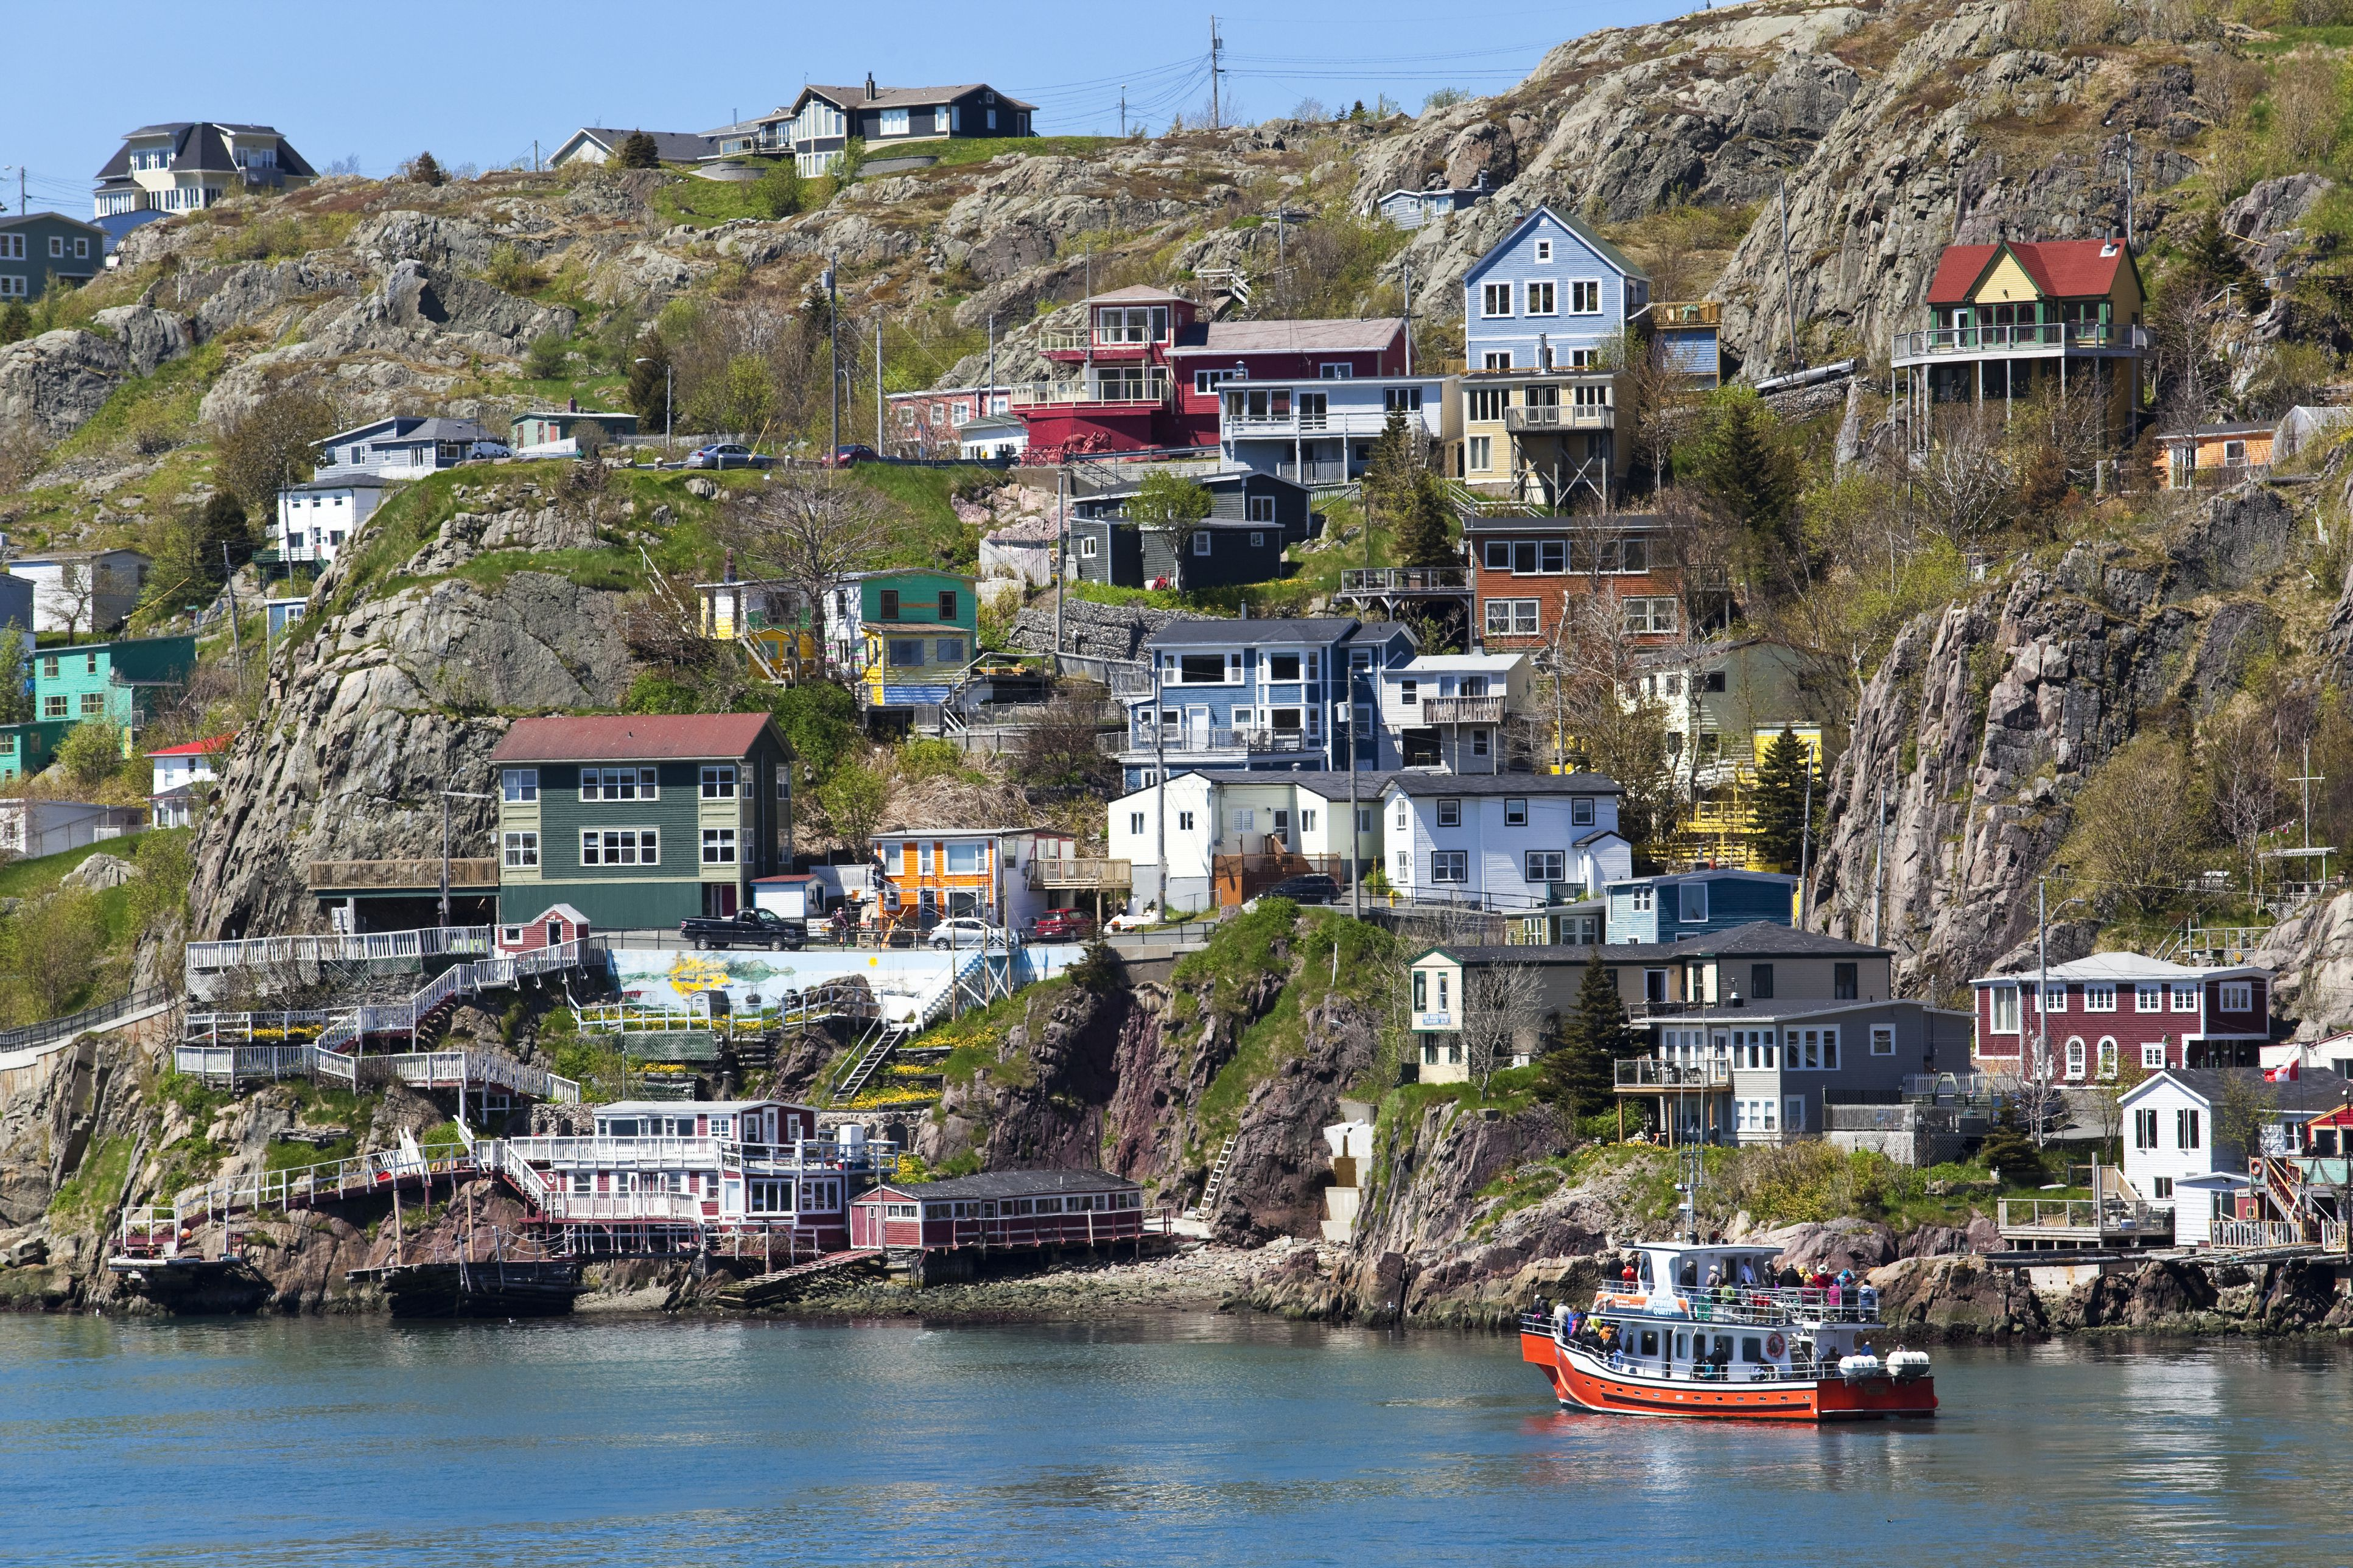 The Battery is a small neighbourhood at the entrance to St. Johns harbour that is noted for its colourful houses built at the base of Signal Hill.